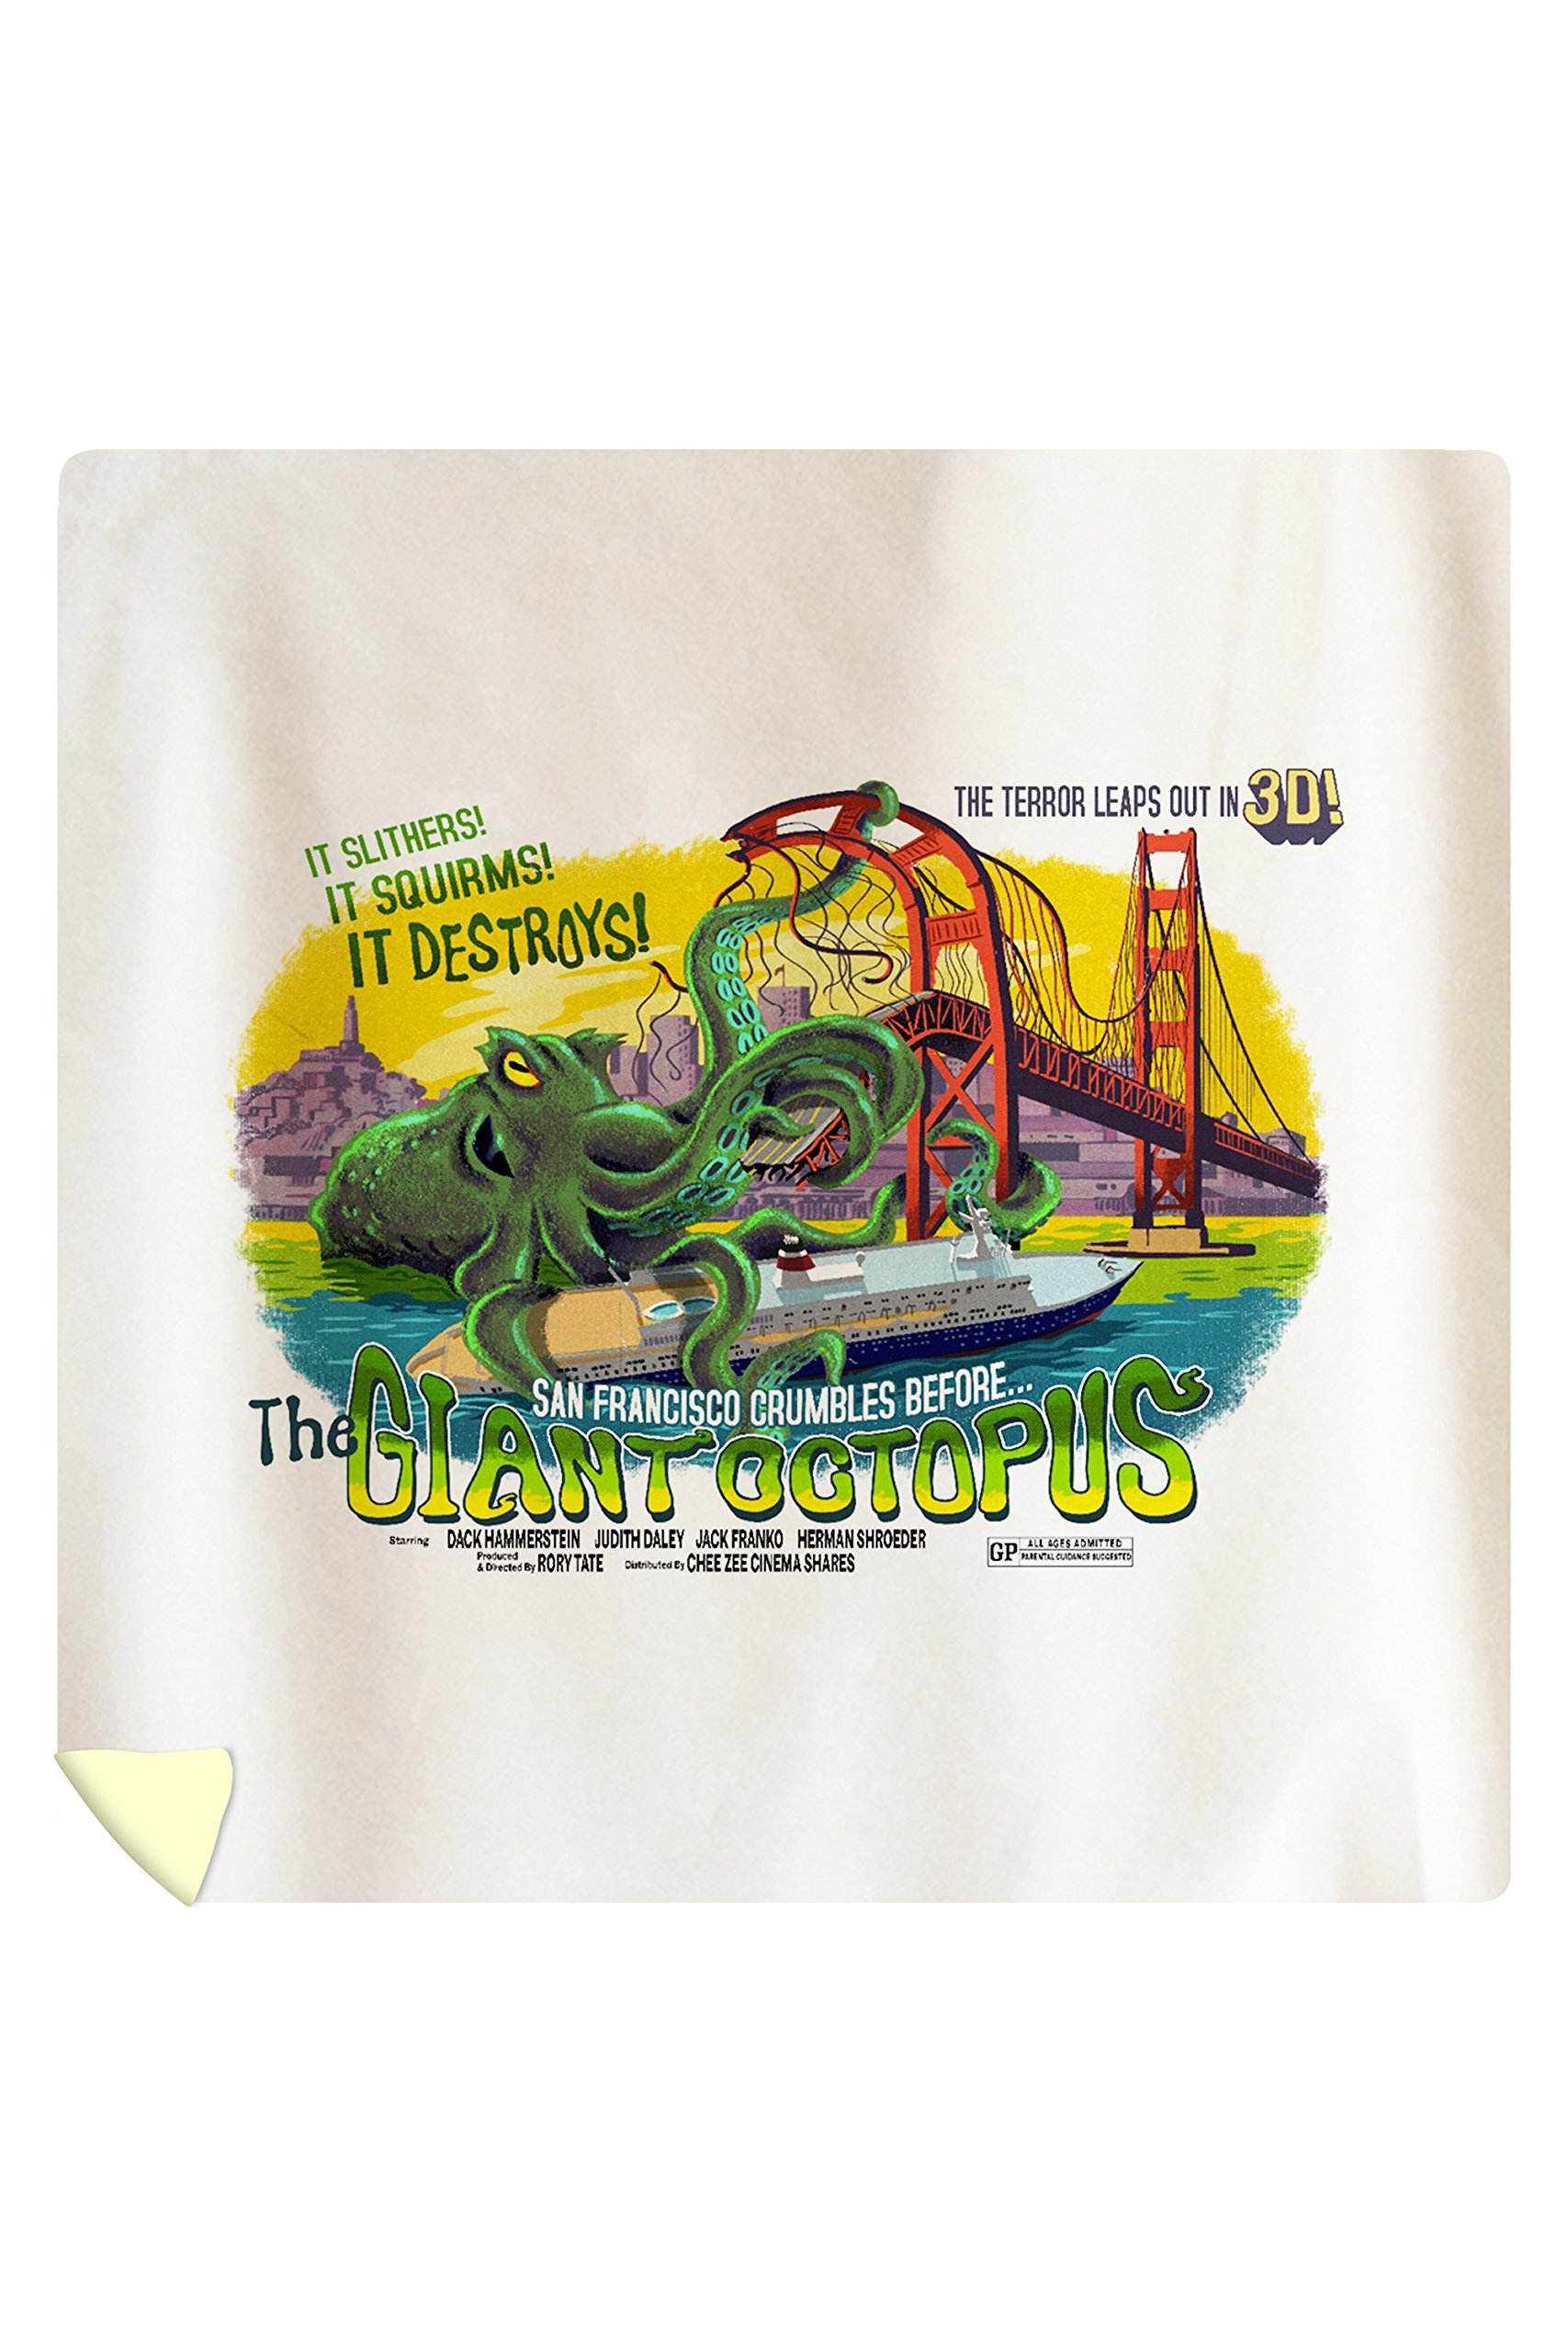 San Francisco, California - The Giant Octopus - B Movie Poster (88x88 Queen Microfiber Duvet Cover)